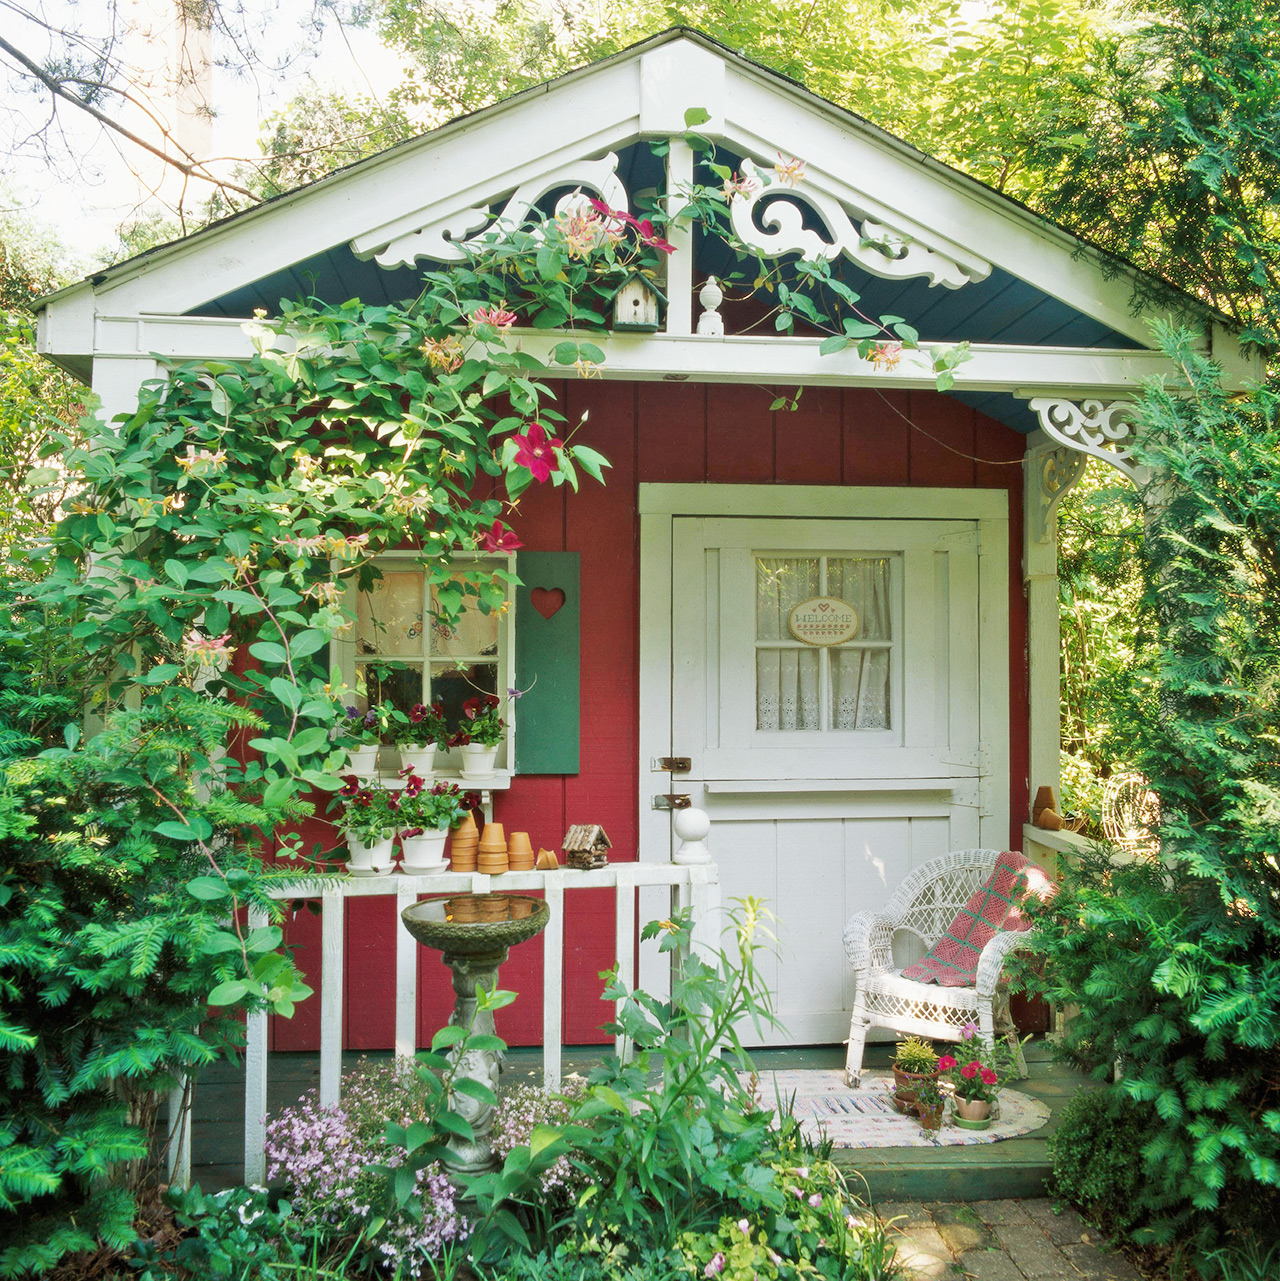 red garden shed with white trim